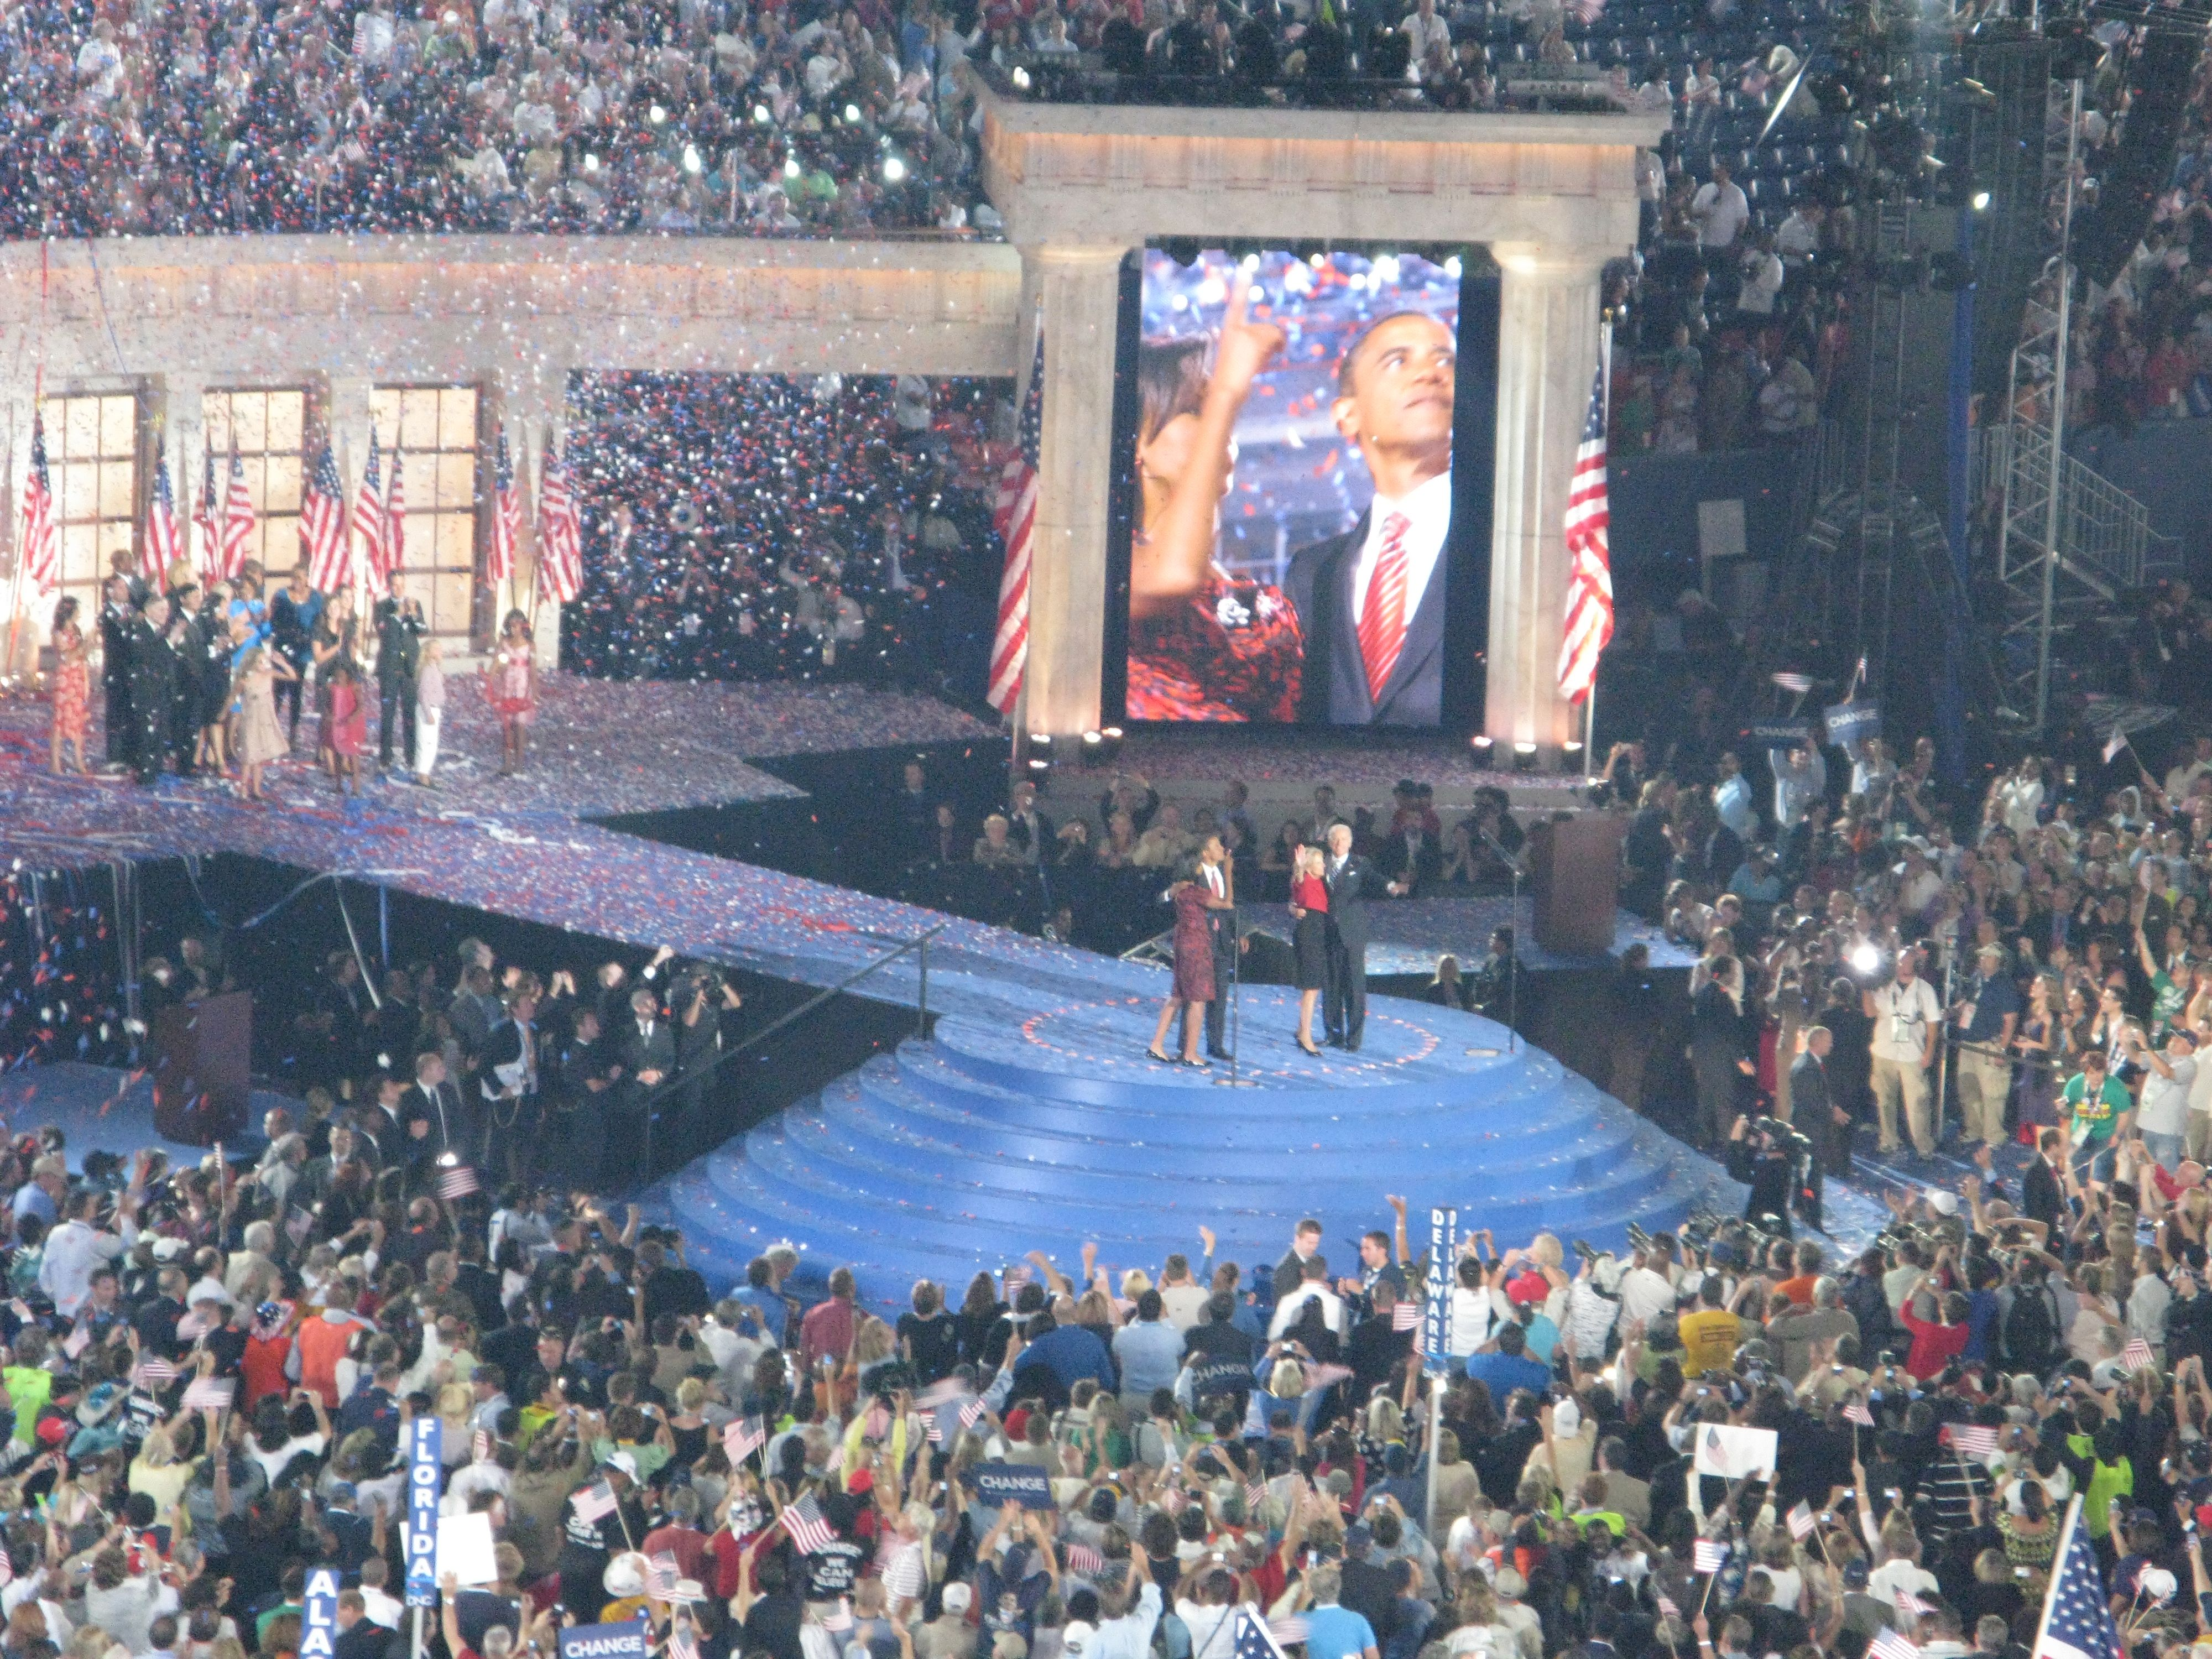 The 2012 Democratic National Convention